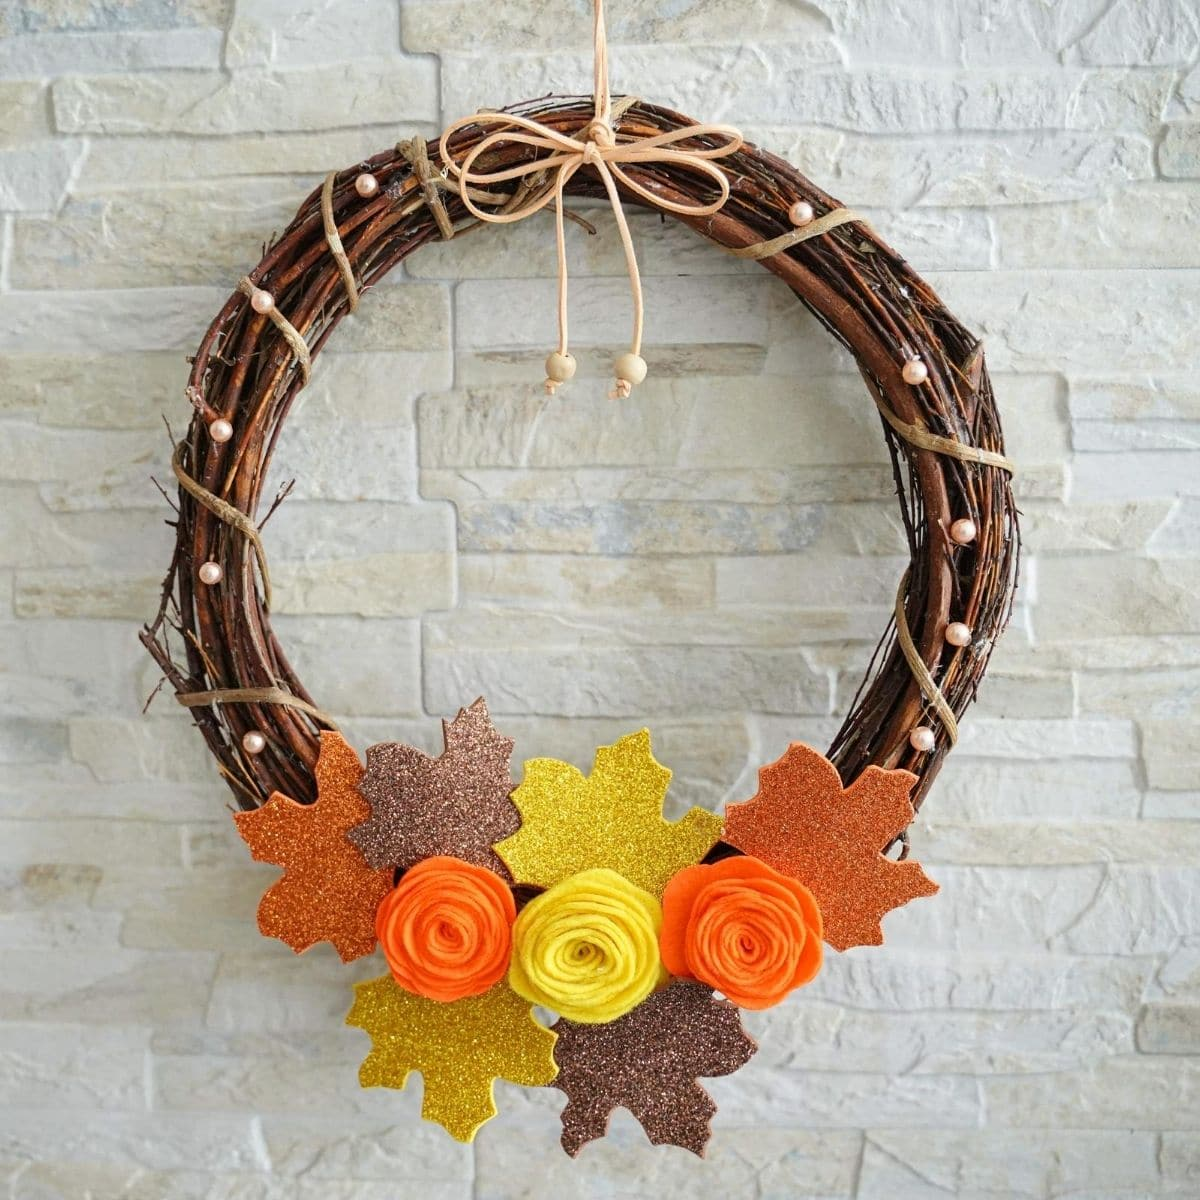 Rustic Fall Grapevine Wreath With Fabric Flowers Diy Crafts